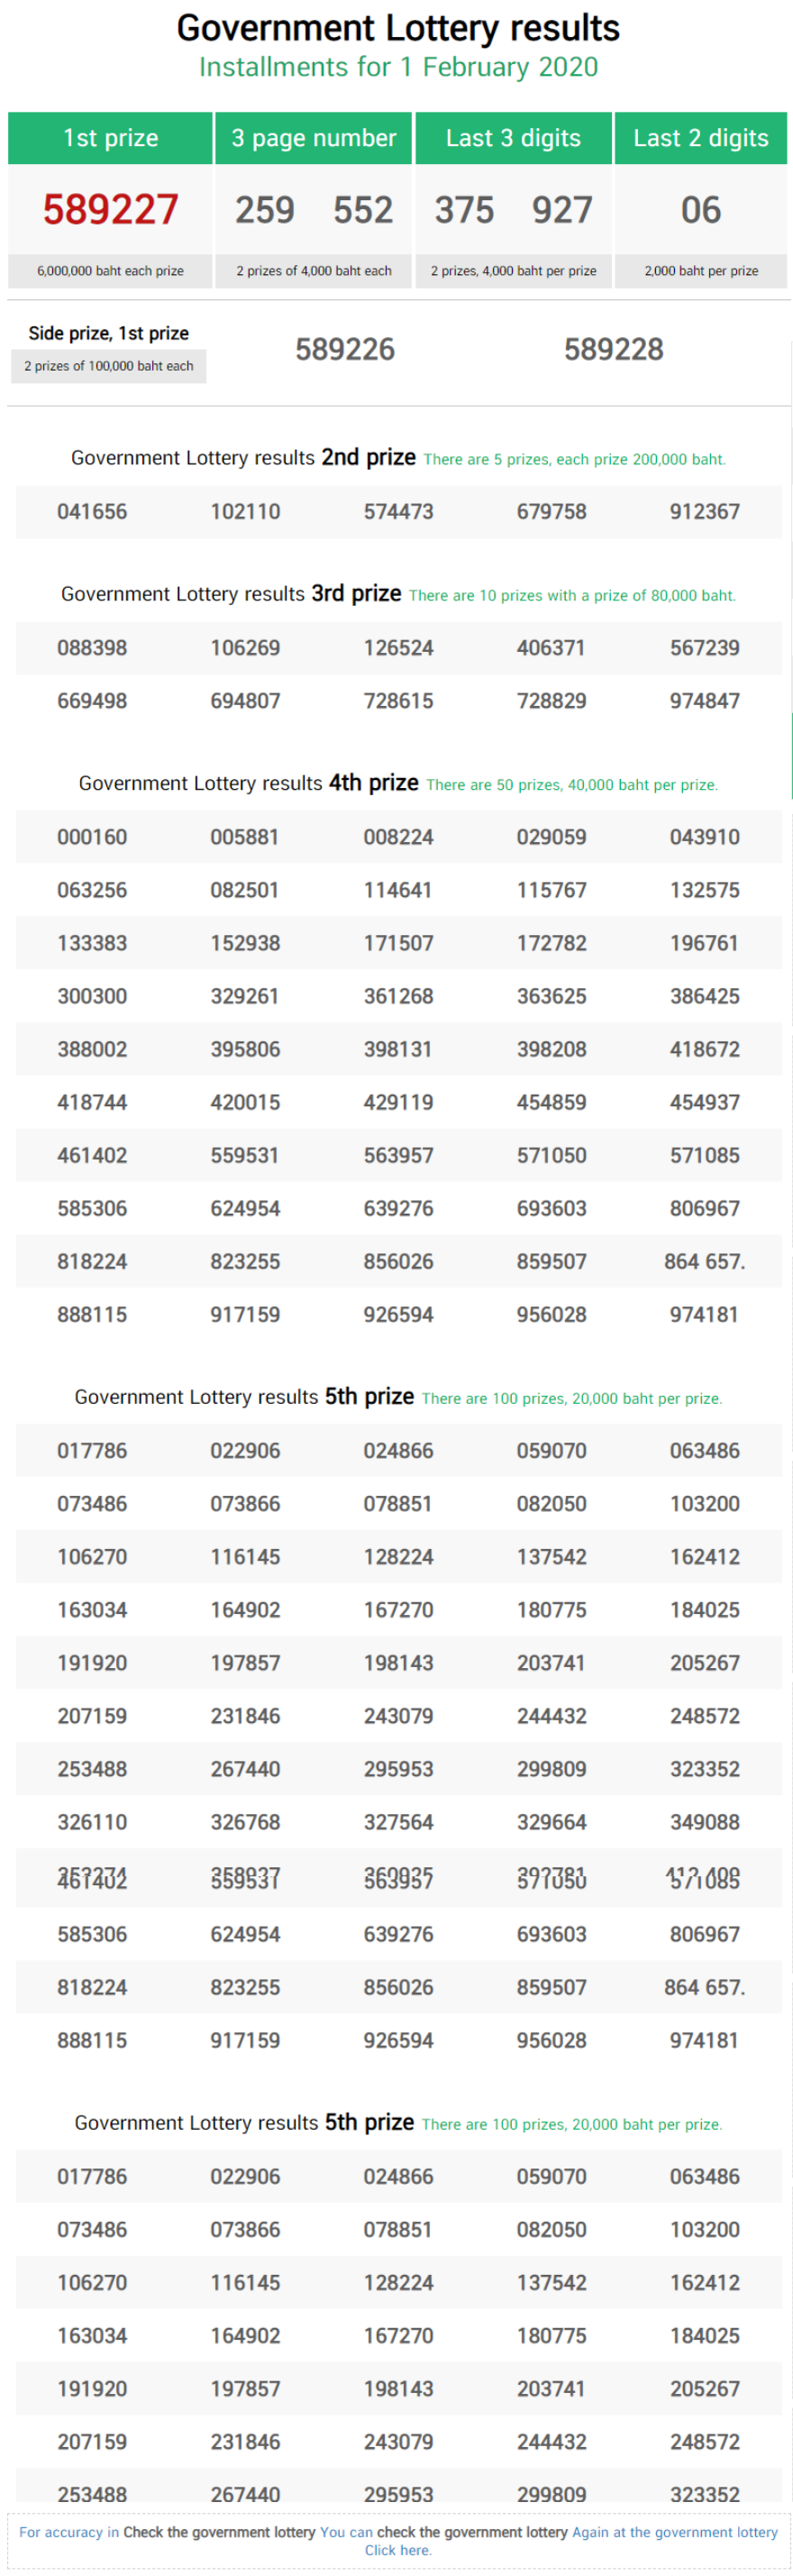 thai-lottery-result-1st-feb-2020